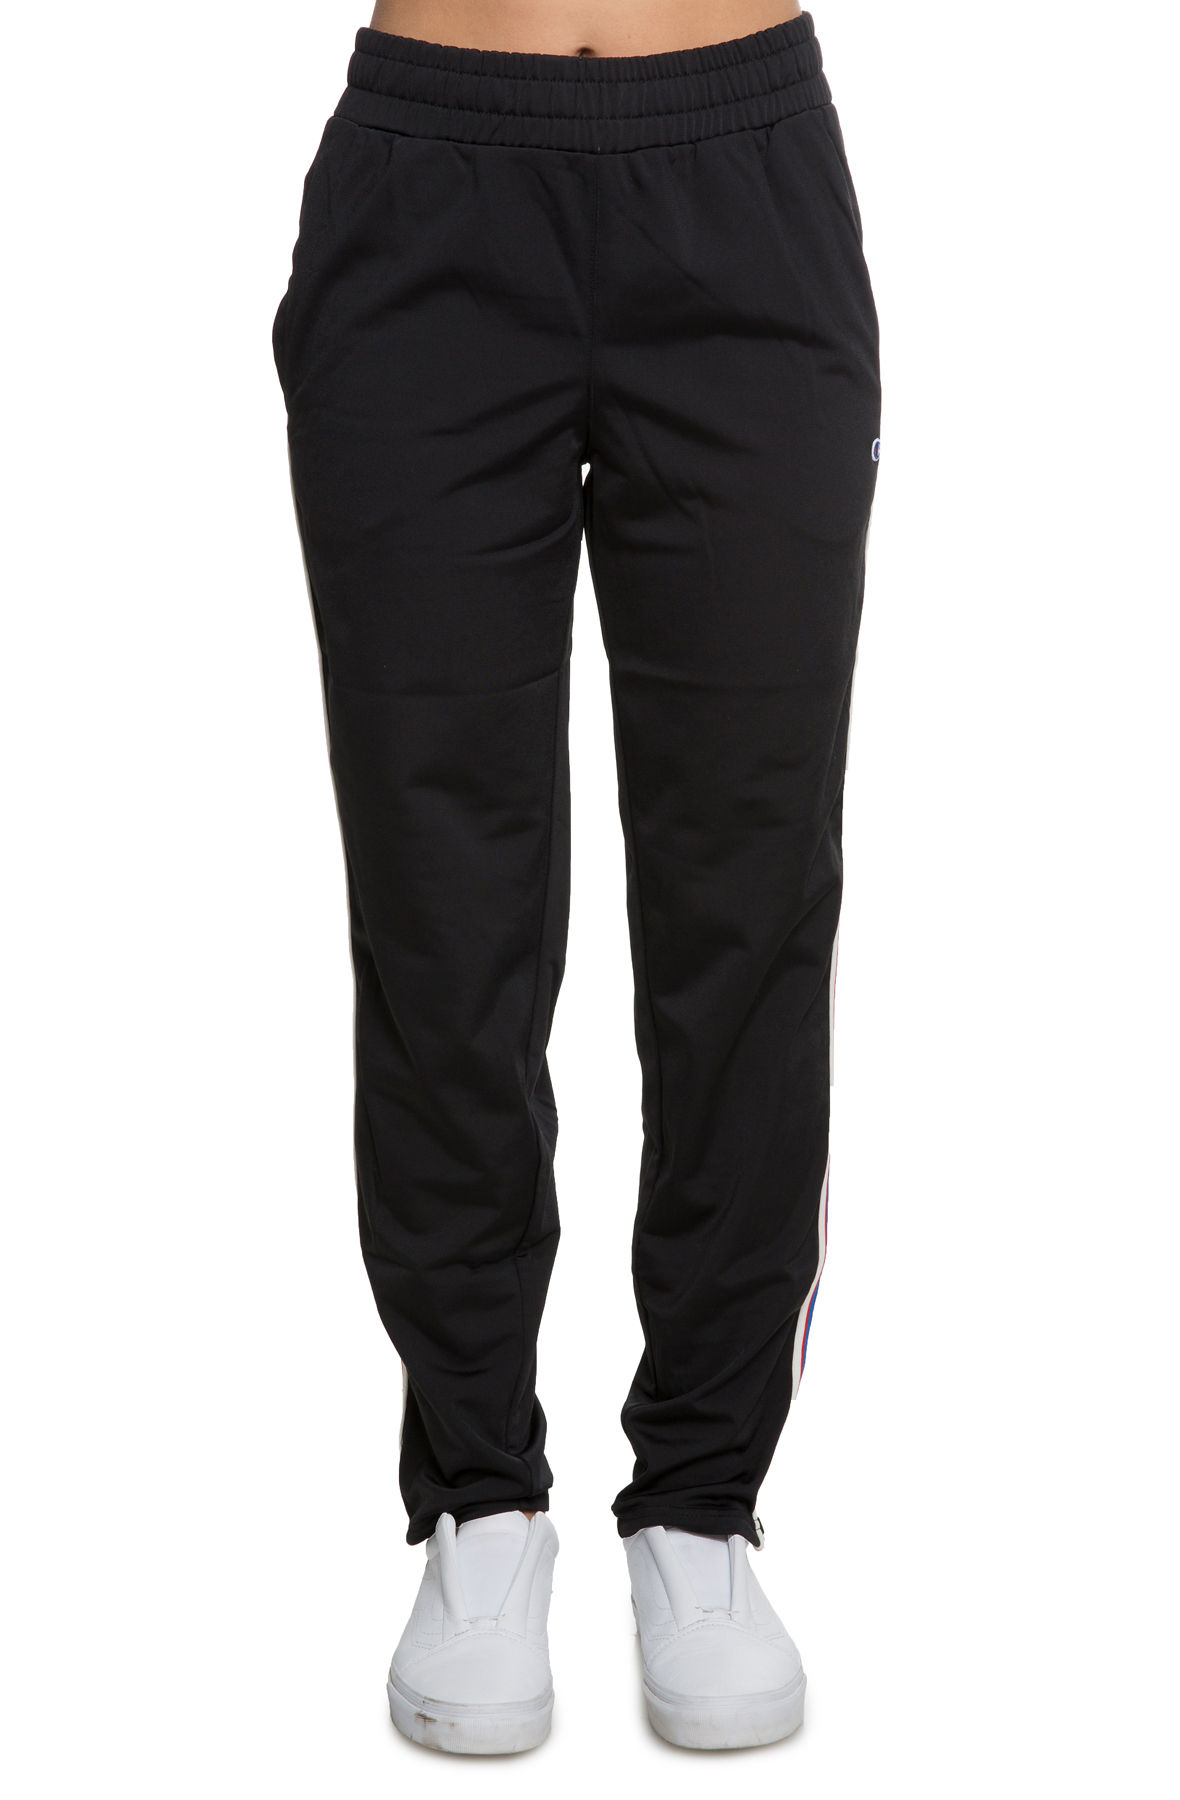 Image of The Women's Track Pant in Black